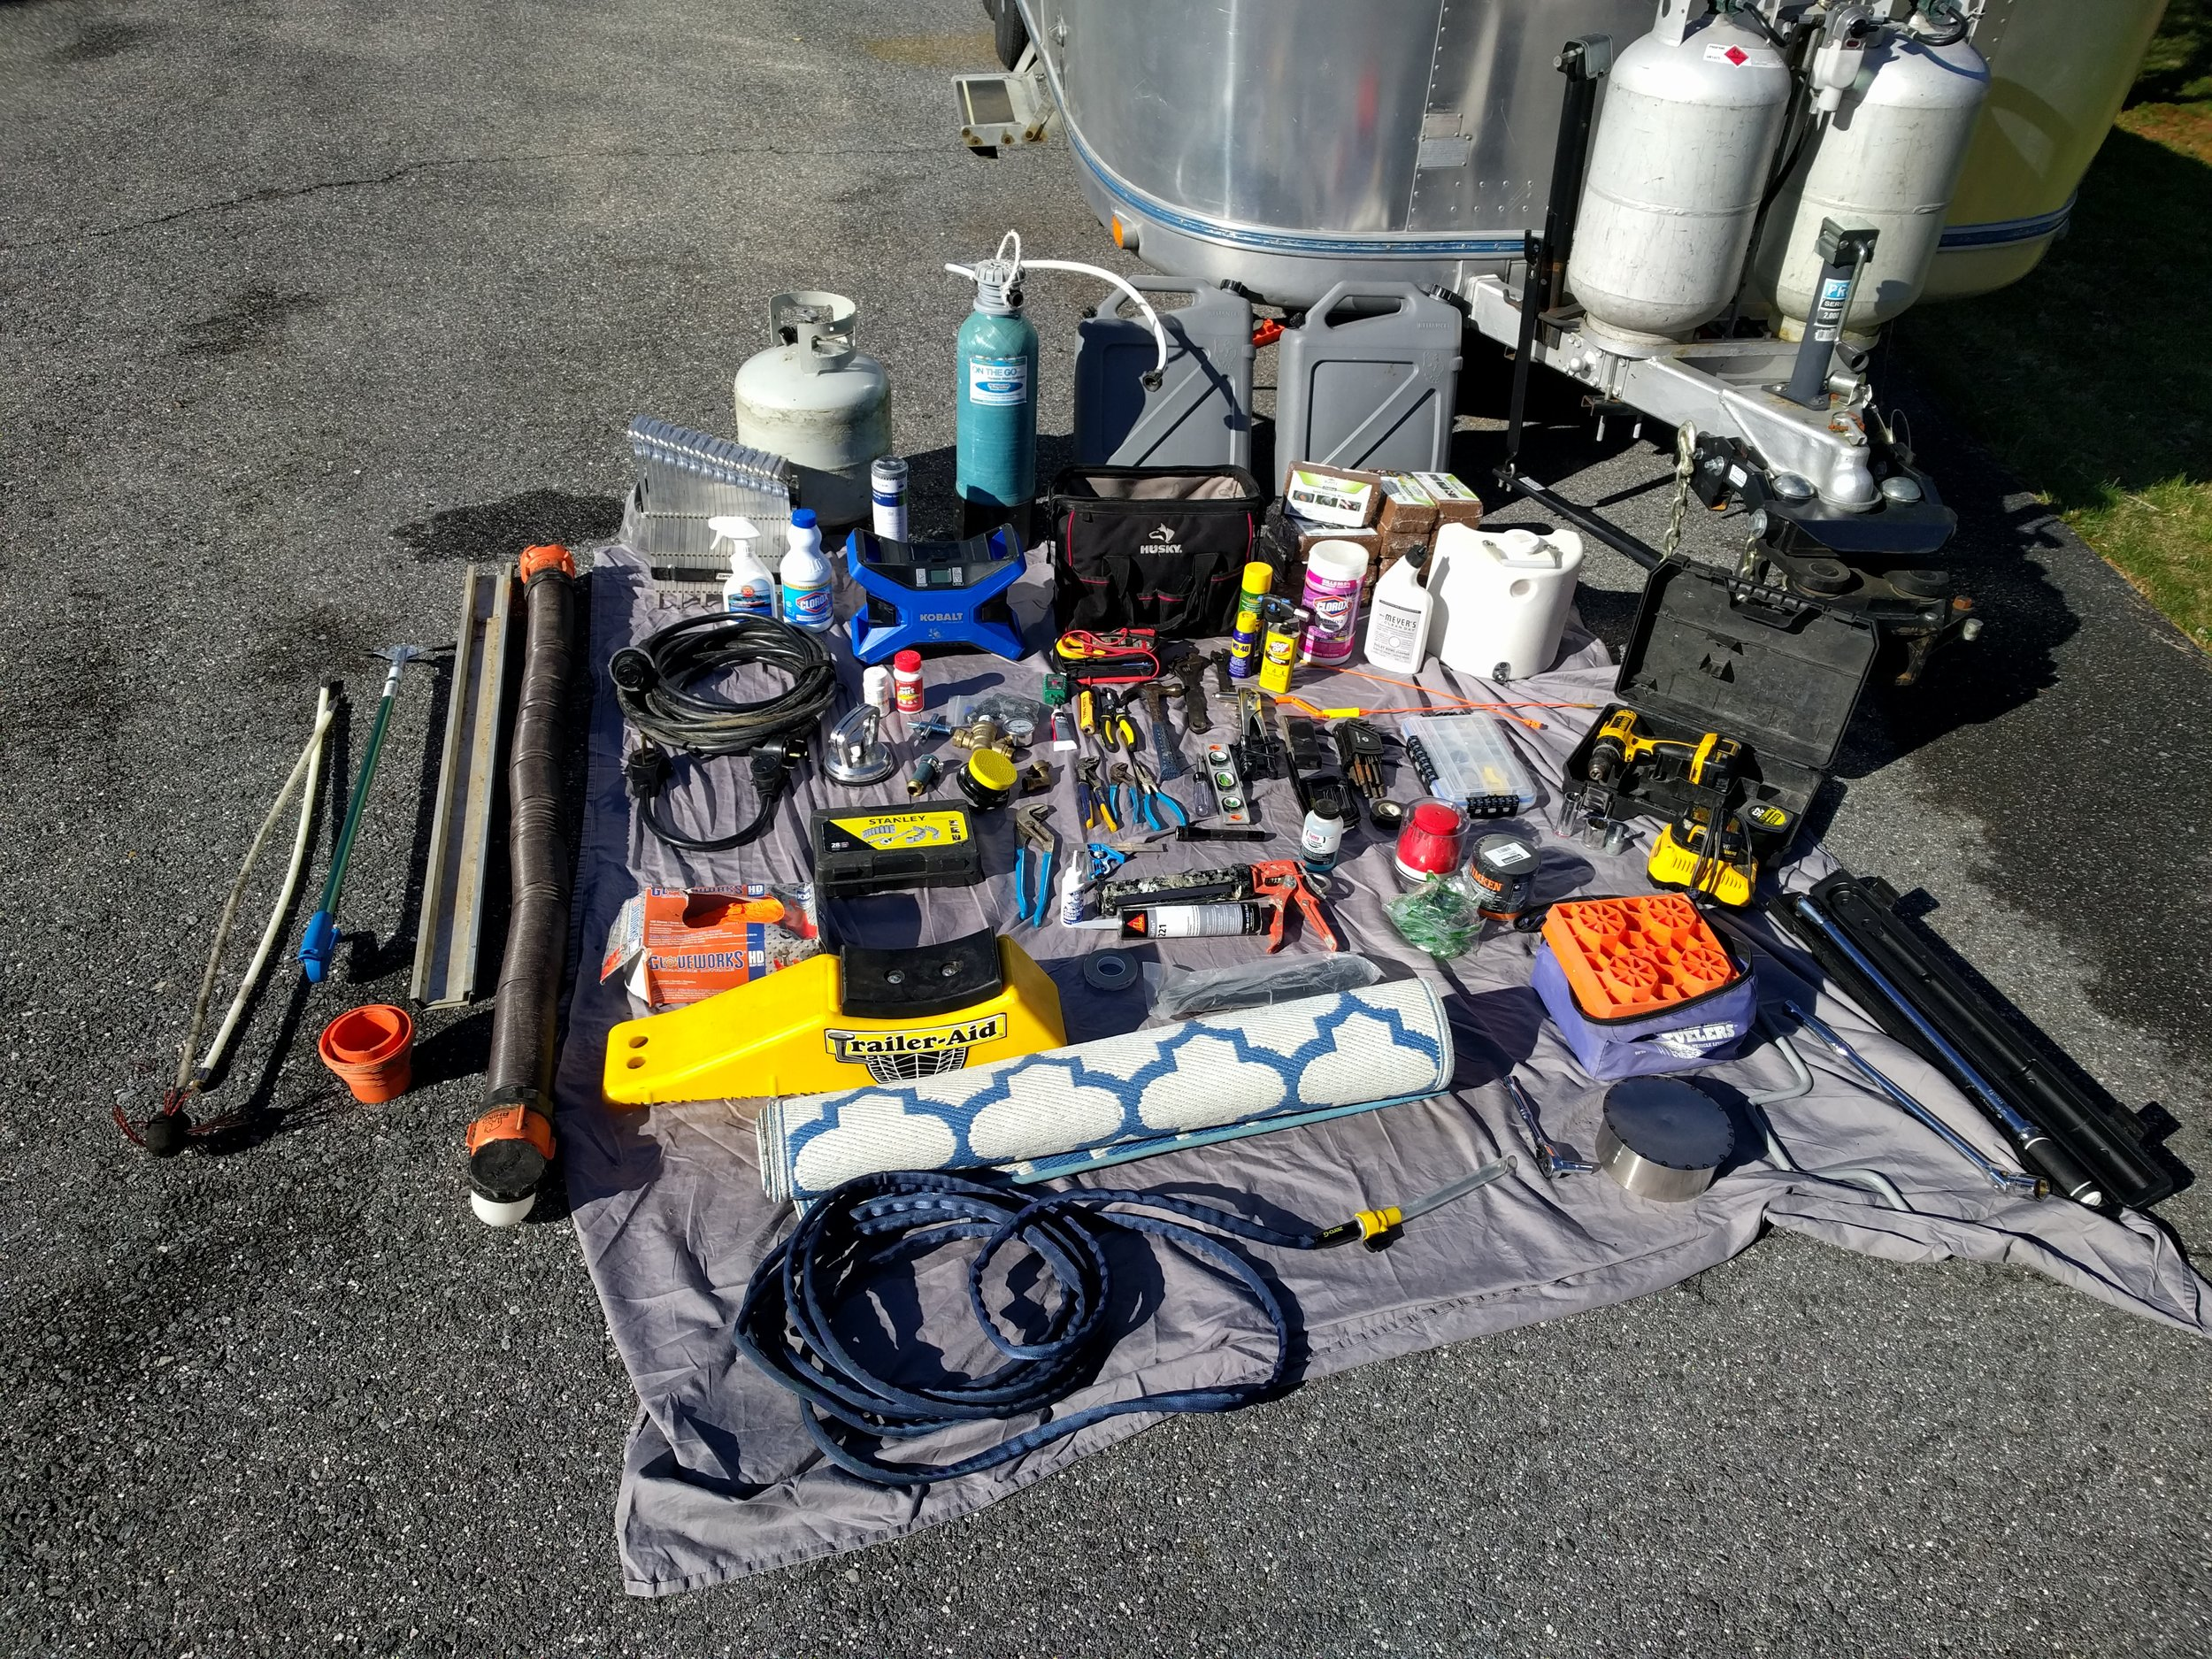 Tools and Utility.jpg